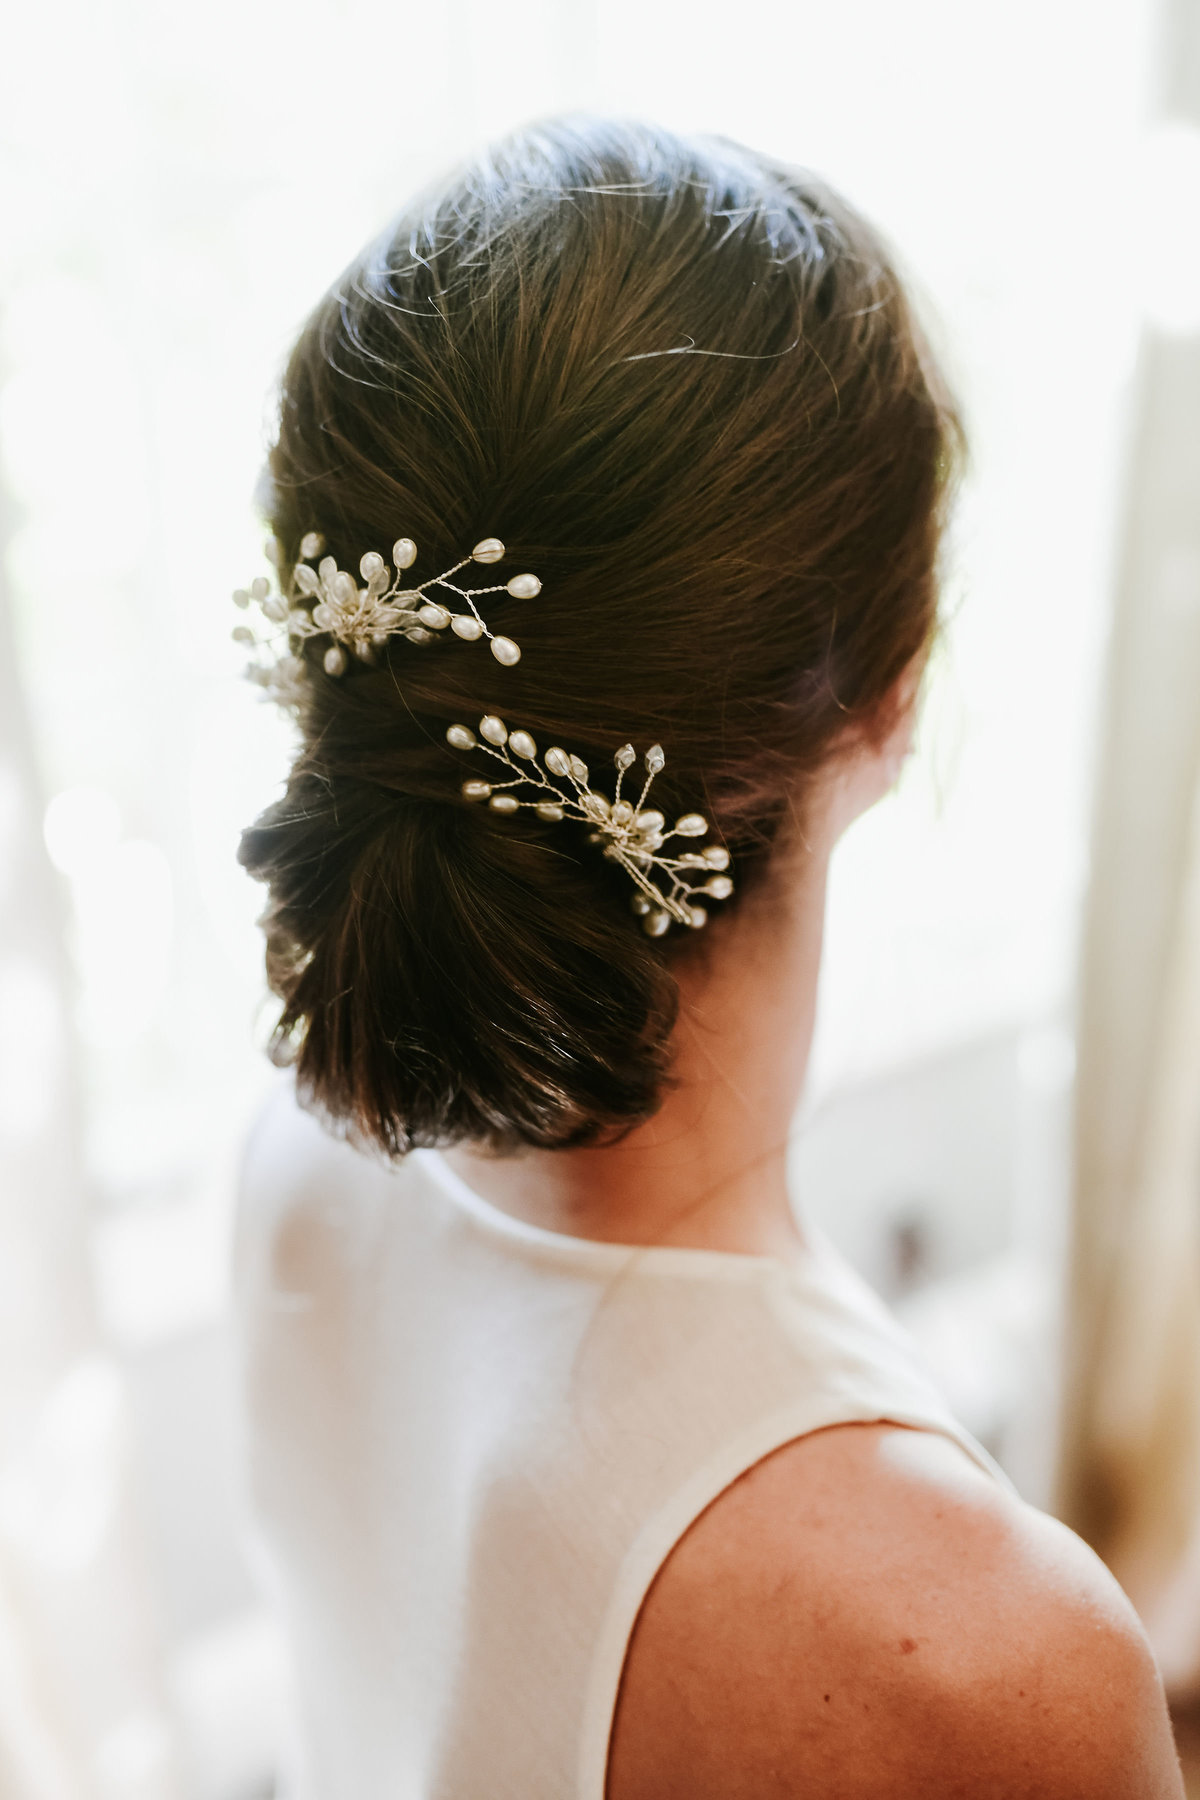 Bridal-Hair-Up-Do-Silver-Combs